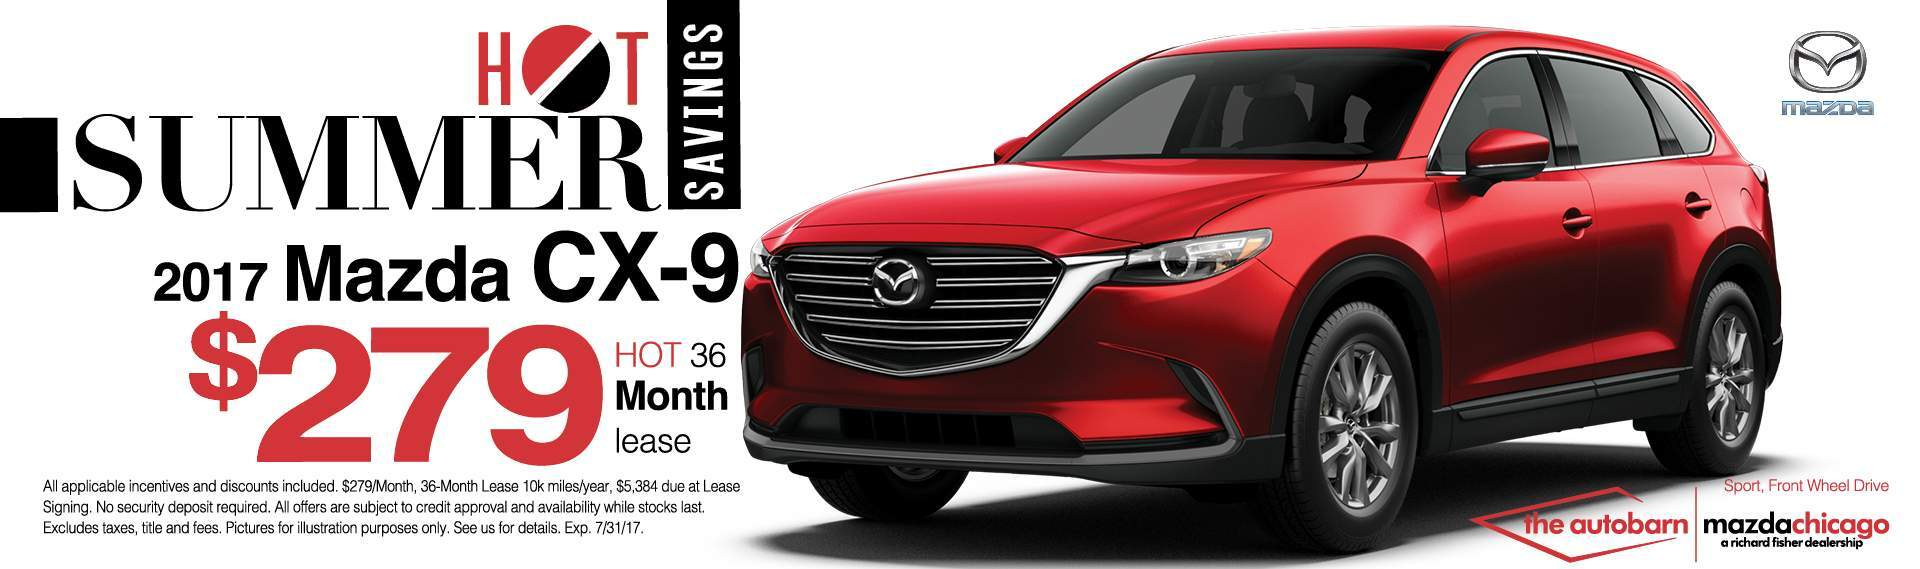 Autobarn City Mazda CX-9 July lease